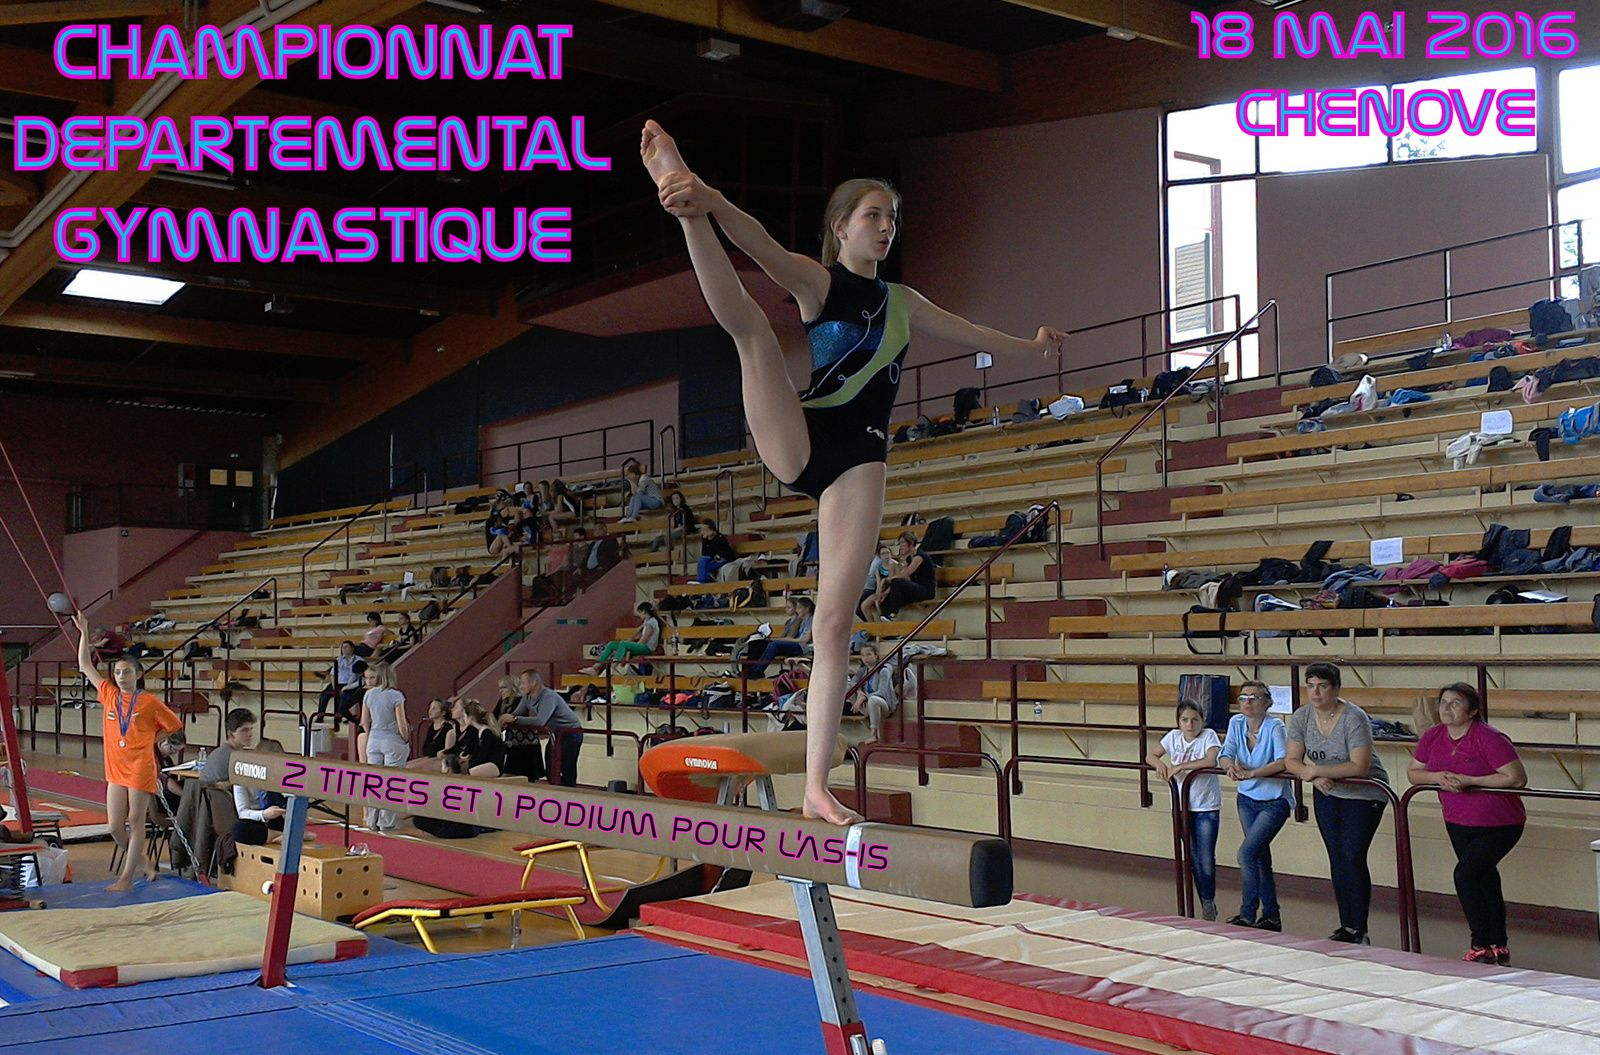 CHAMPIONNAT DEPARTEMENTAL GYMNASTIQUE 2015/2016